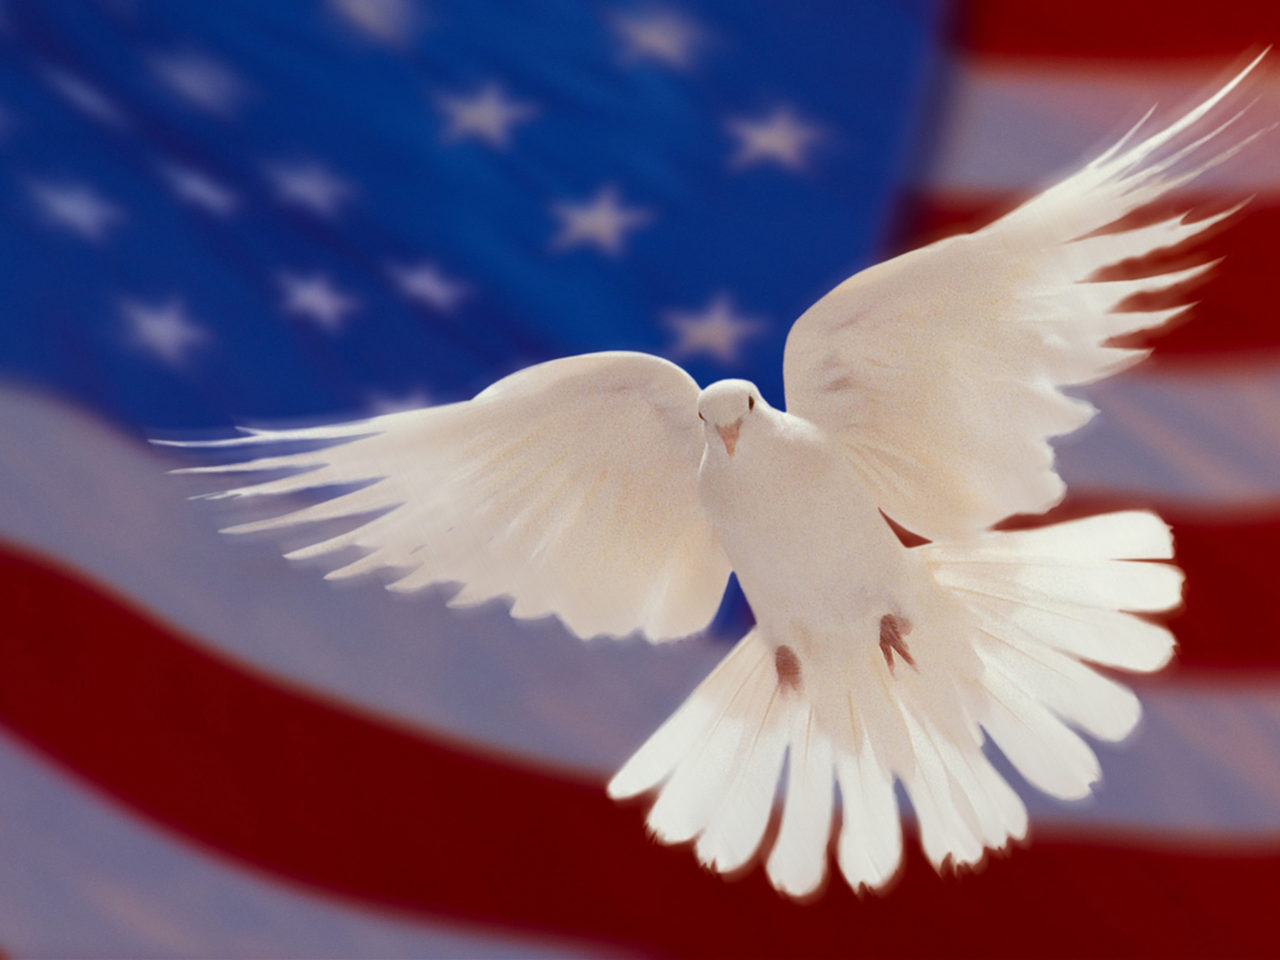 Hd Wallpaper Sea Beach American Flag And White Dove Of Peace Hd Wallpapers For